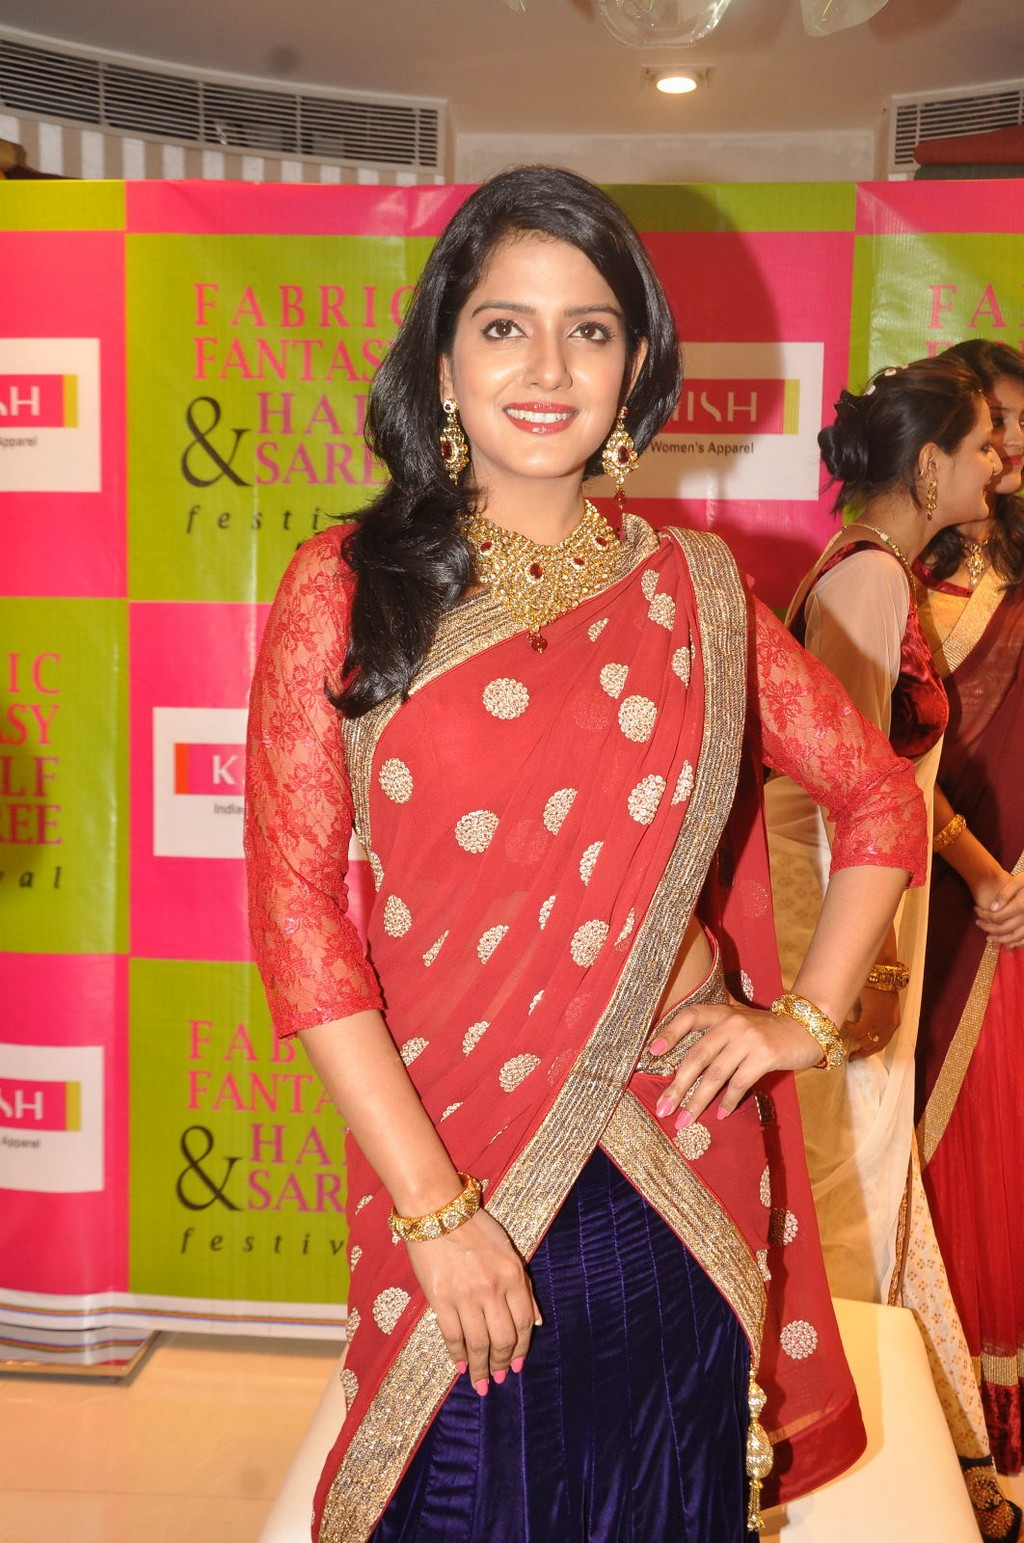 Vishakha Singh wallpaper, Vishakha Singh HD wallpaper, Vishakha Singh in red saree